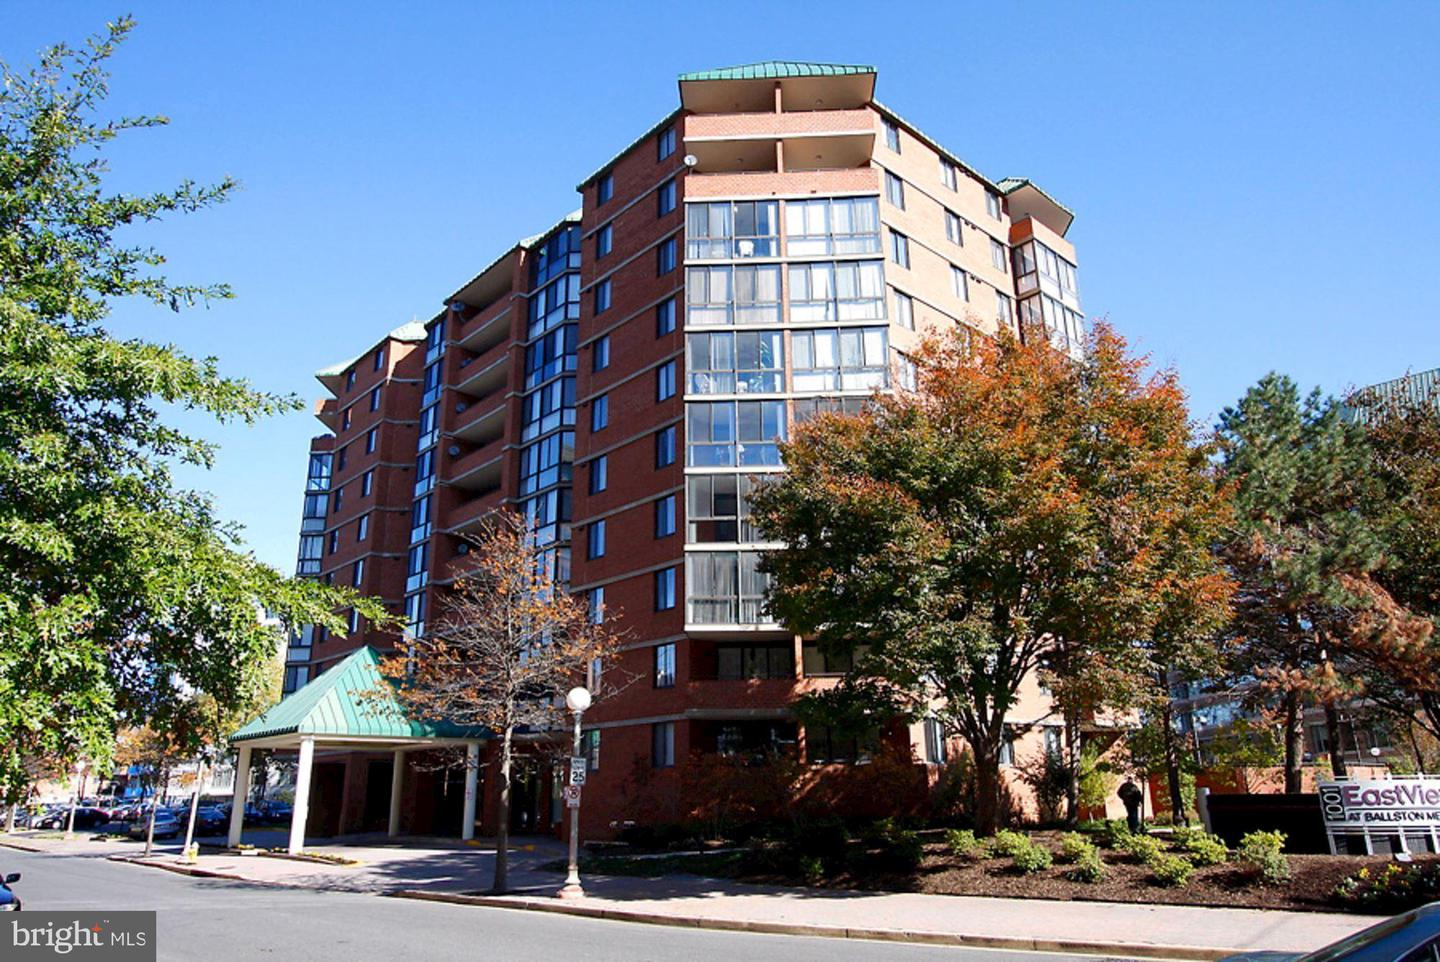 1001 RANDOLPH STREET, ARLINGTON, Virginia 22201, 1 Bedroom Bedrooms, ,1 BathroomBathrooms,Residential,For Sale,RANDOLPH,5,VAAR179668